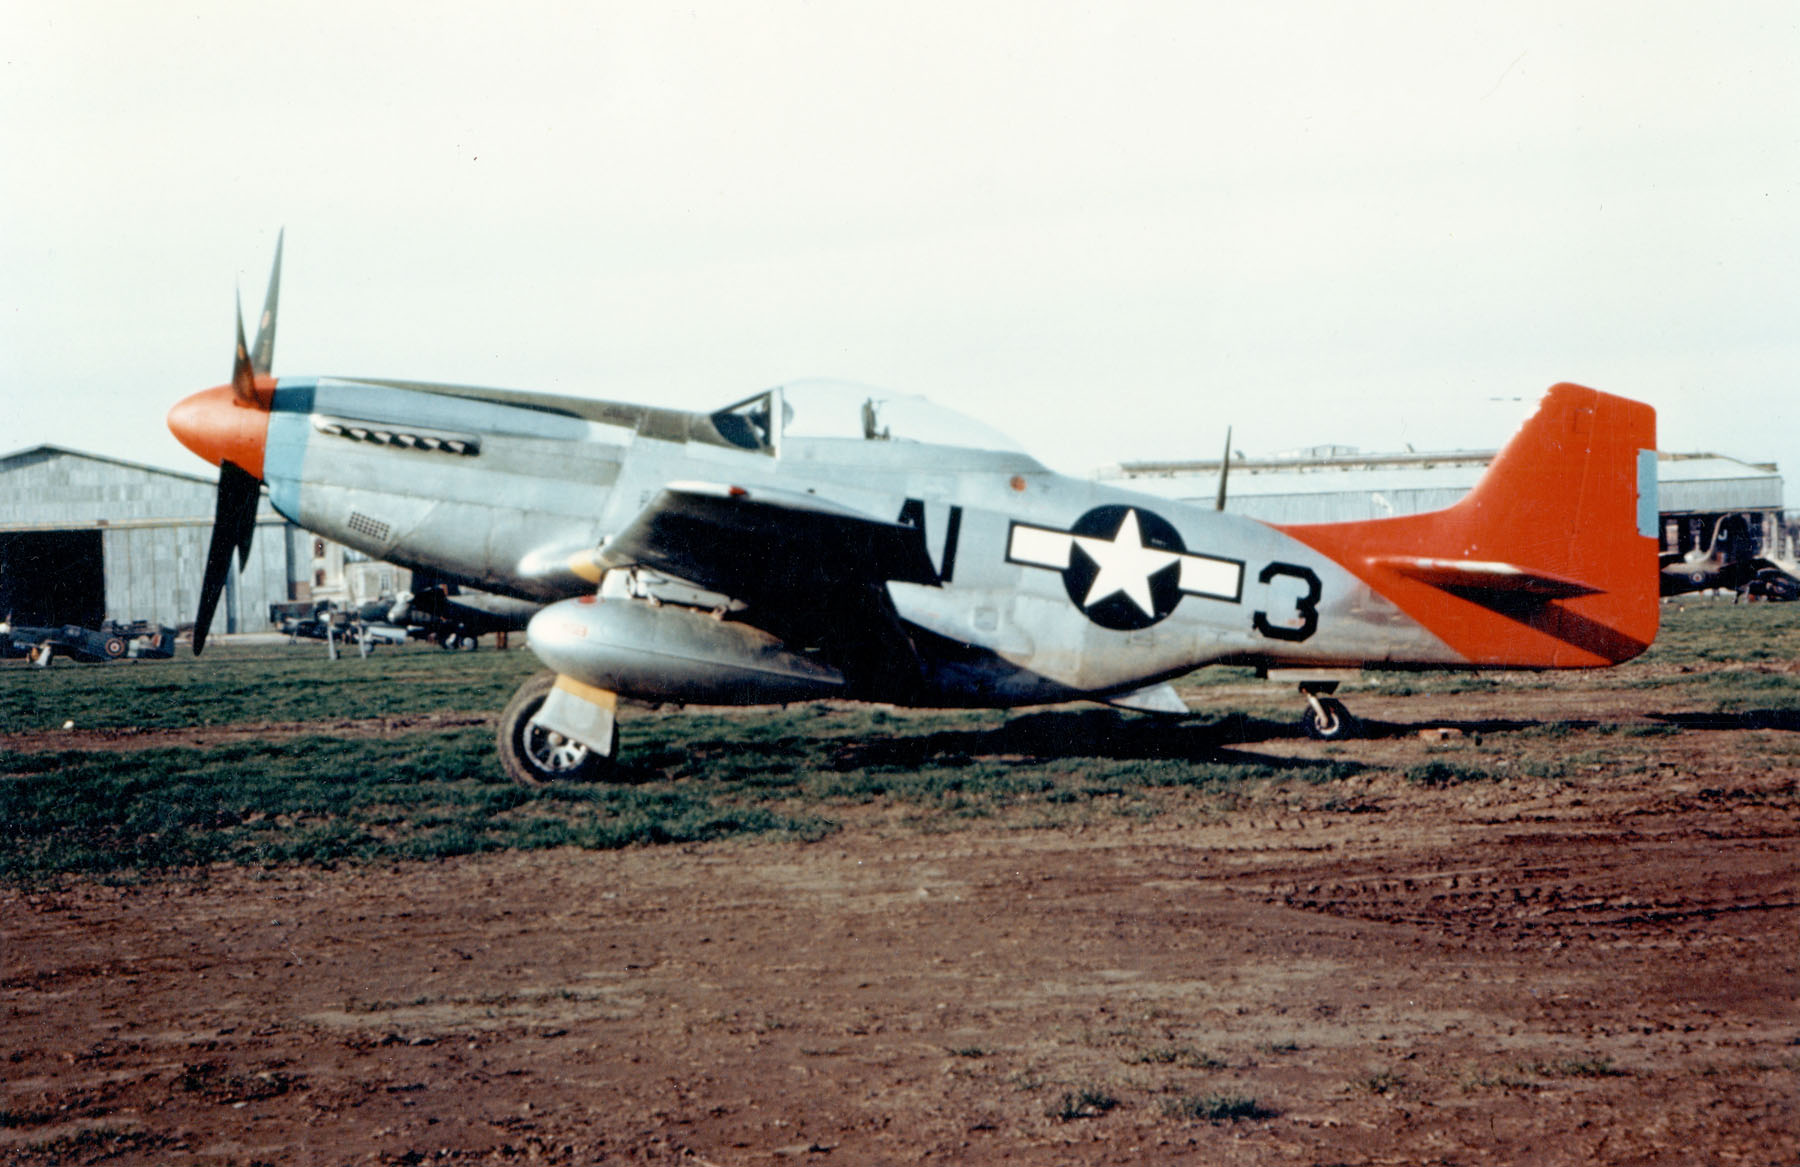 File:Tuskegee P-51 jpg - Wikimedia Commons